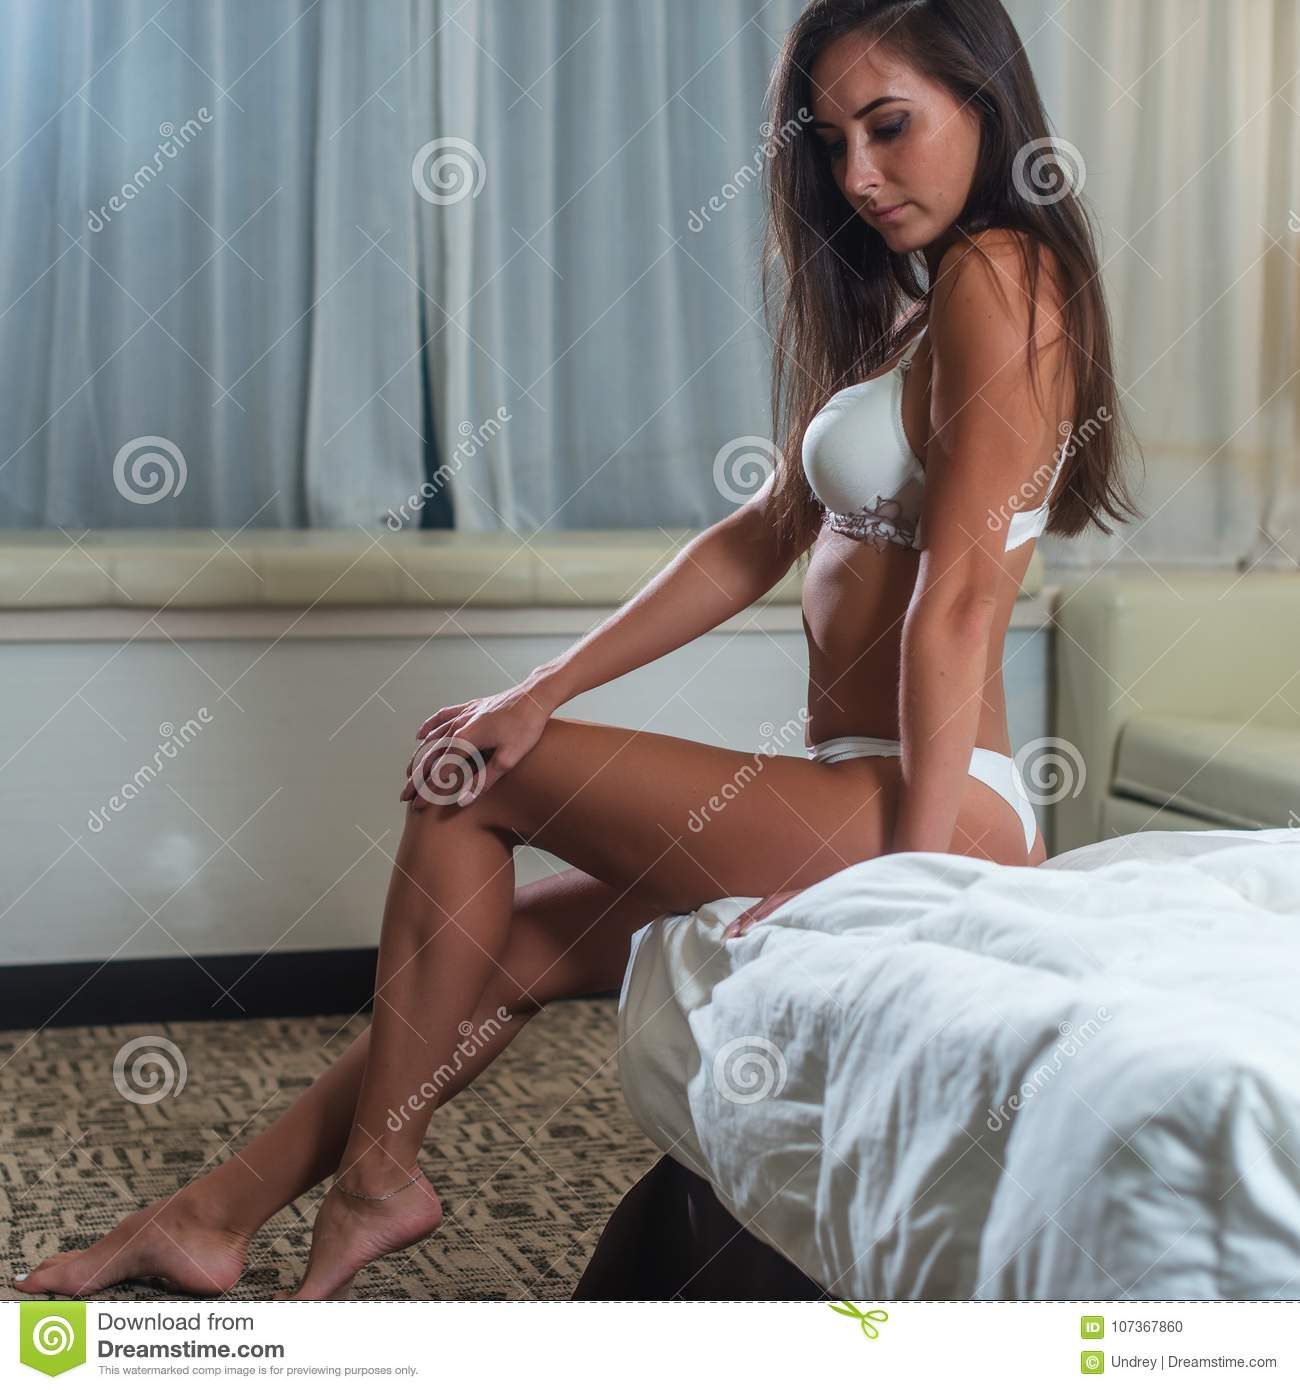 Tanned slim young brunette woman wearing white bra posing sitting on bed in light bedroom